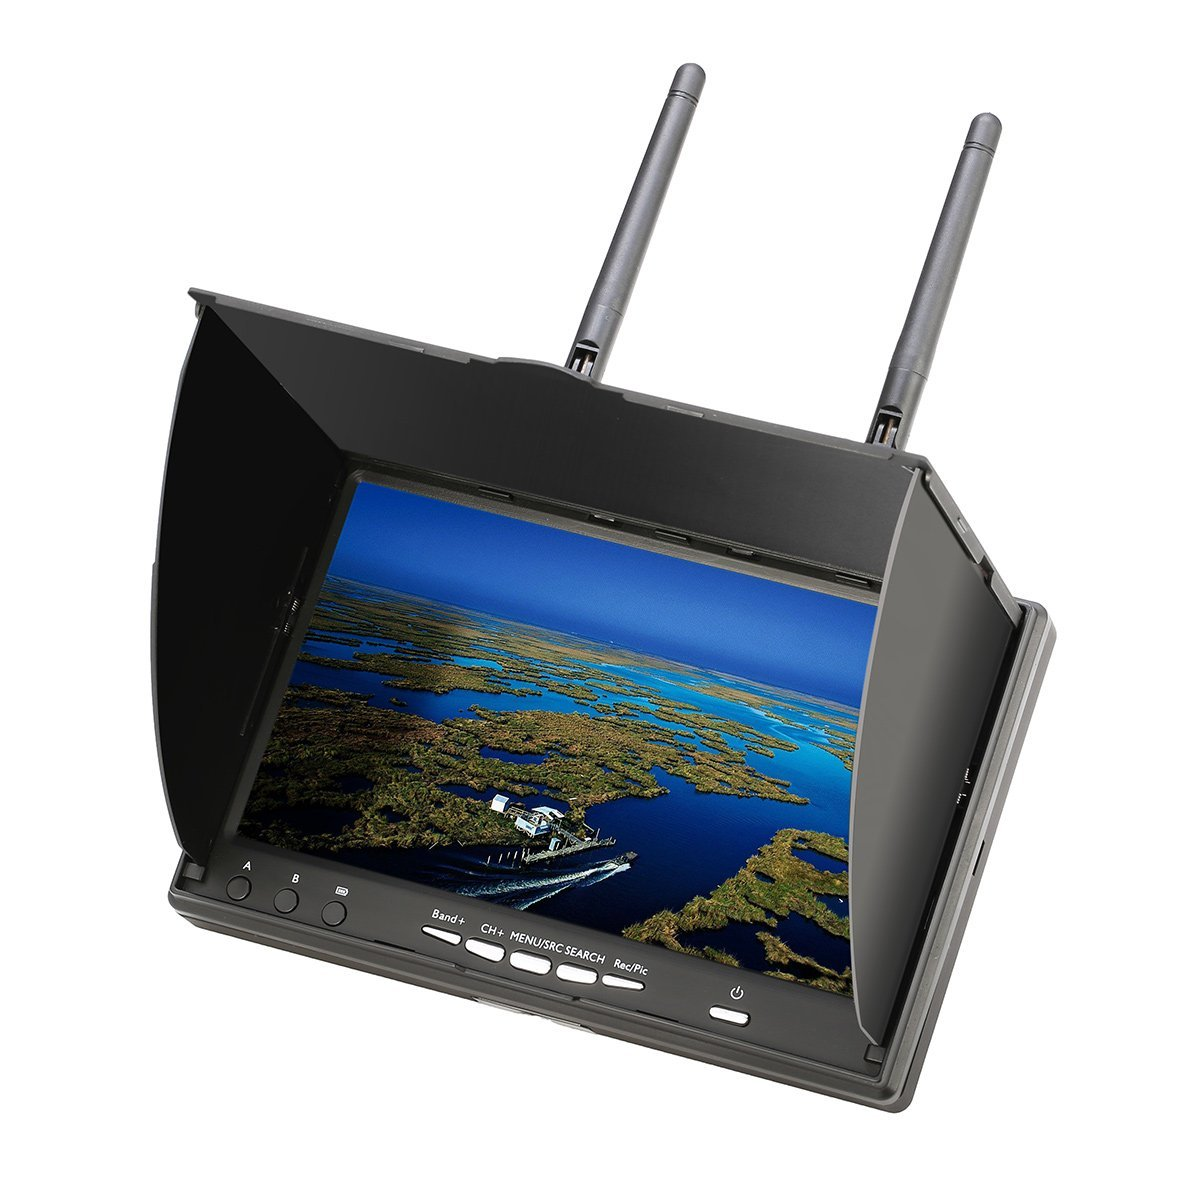 EACHINE LCD5802D TFT LCD FPV Monitor with DVR 5.8G 40CH 7 Inch Screen 800x480 SVG 600 cd /㎡ High Bright OSD Dual Receiver Support NSTC PAL for Car Rear View Backup Camera,CCTV Camera FPV Racing Quad by EACHINE